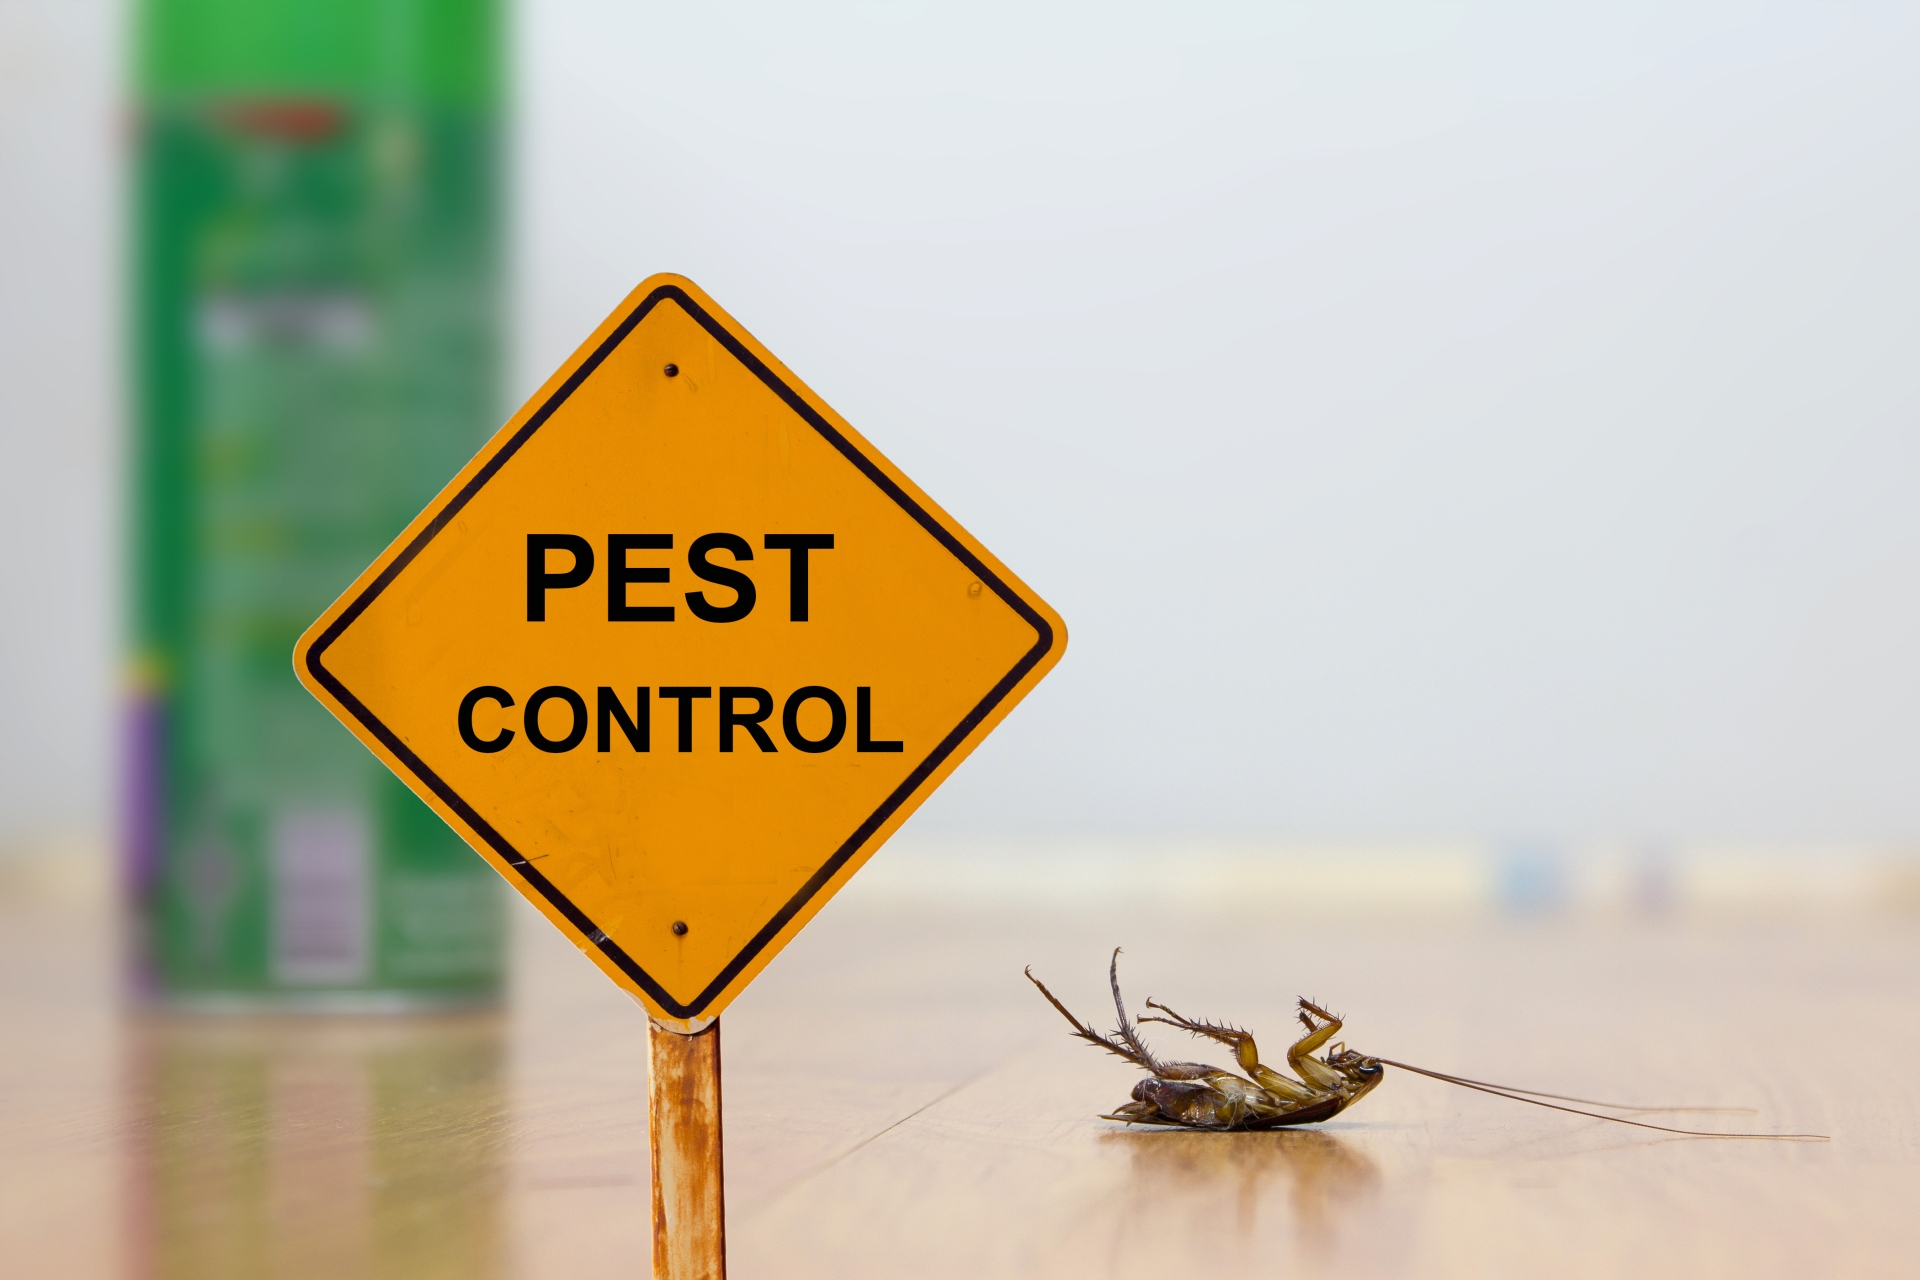 24 Hour Pest Control, Pest Control in Clapham, SW4. Call Now 020 8166 9746